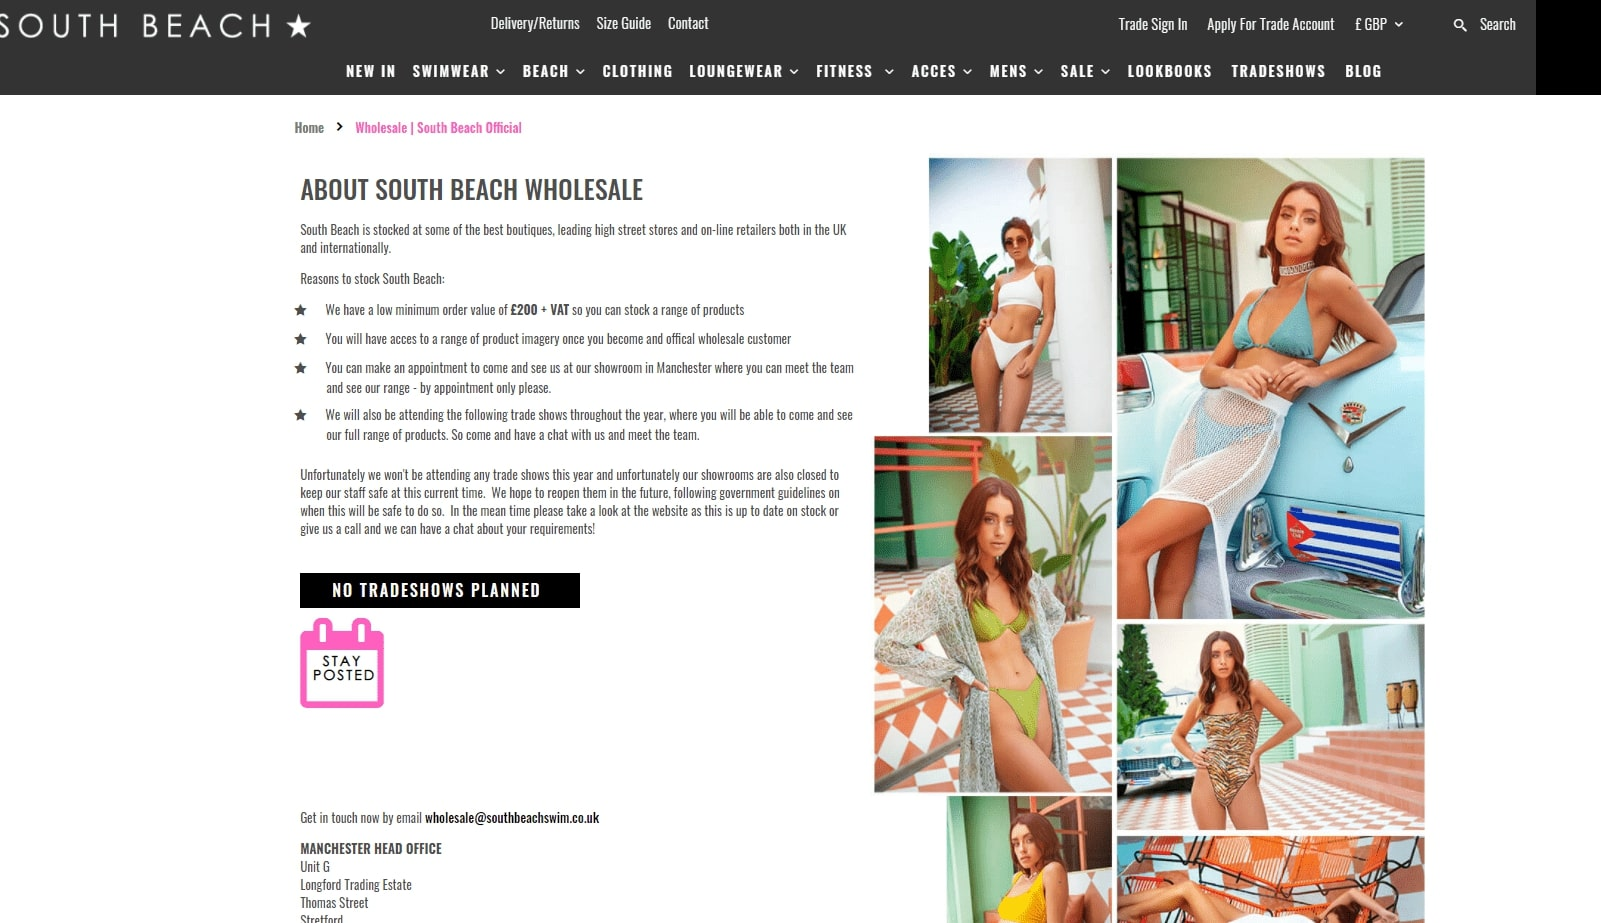 southbeachofficial